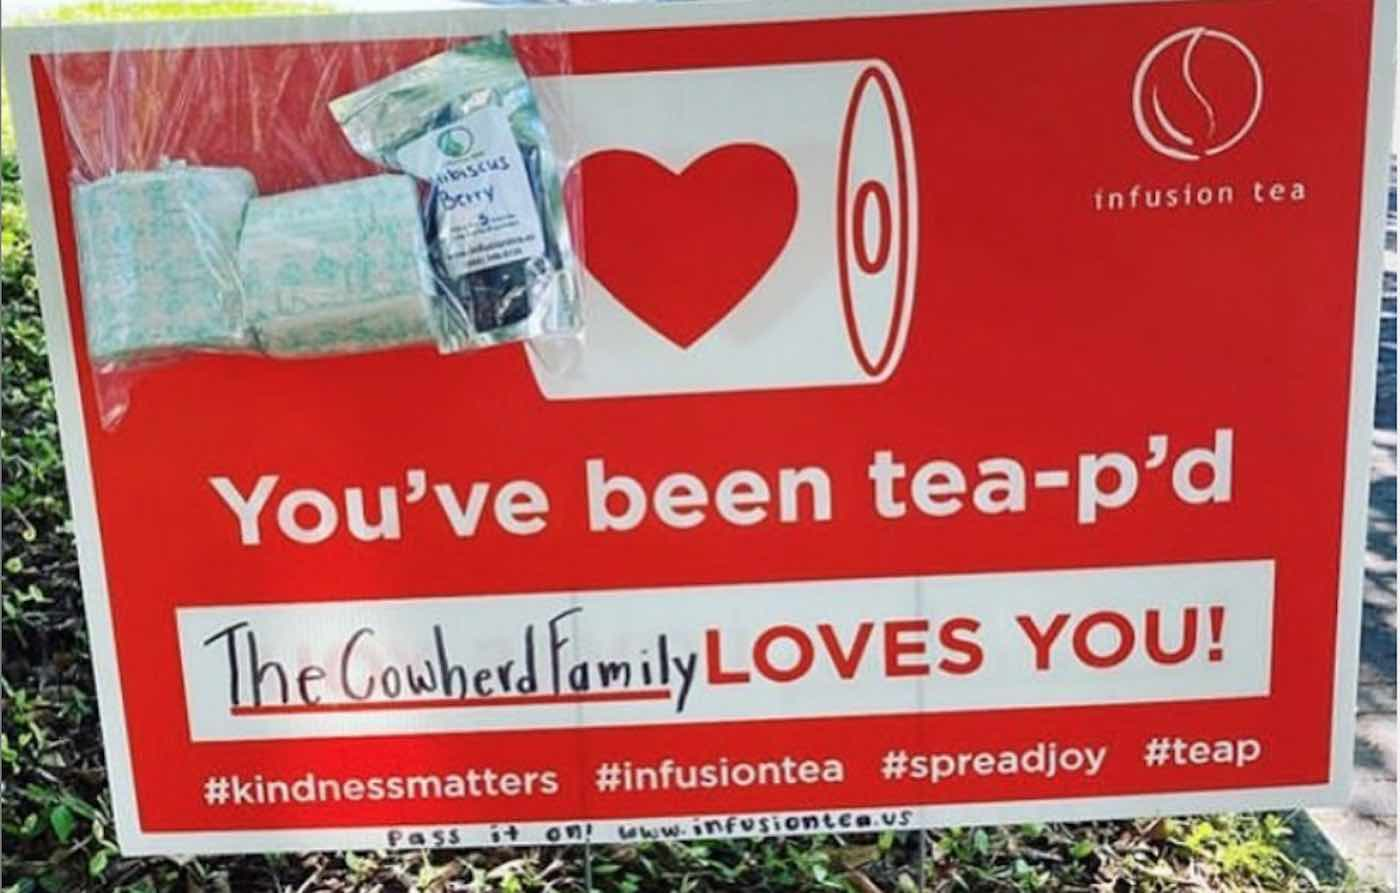 This Tea Company is Staying in Business By 'Tea-p'ing' People's Homes With Surprise Gifts